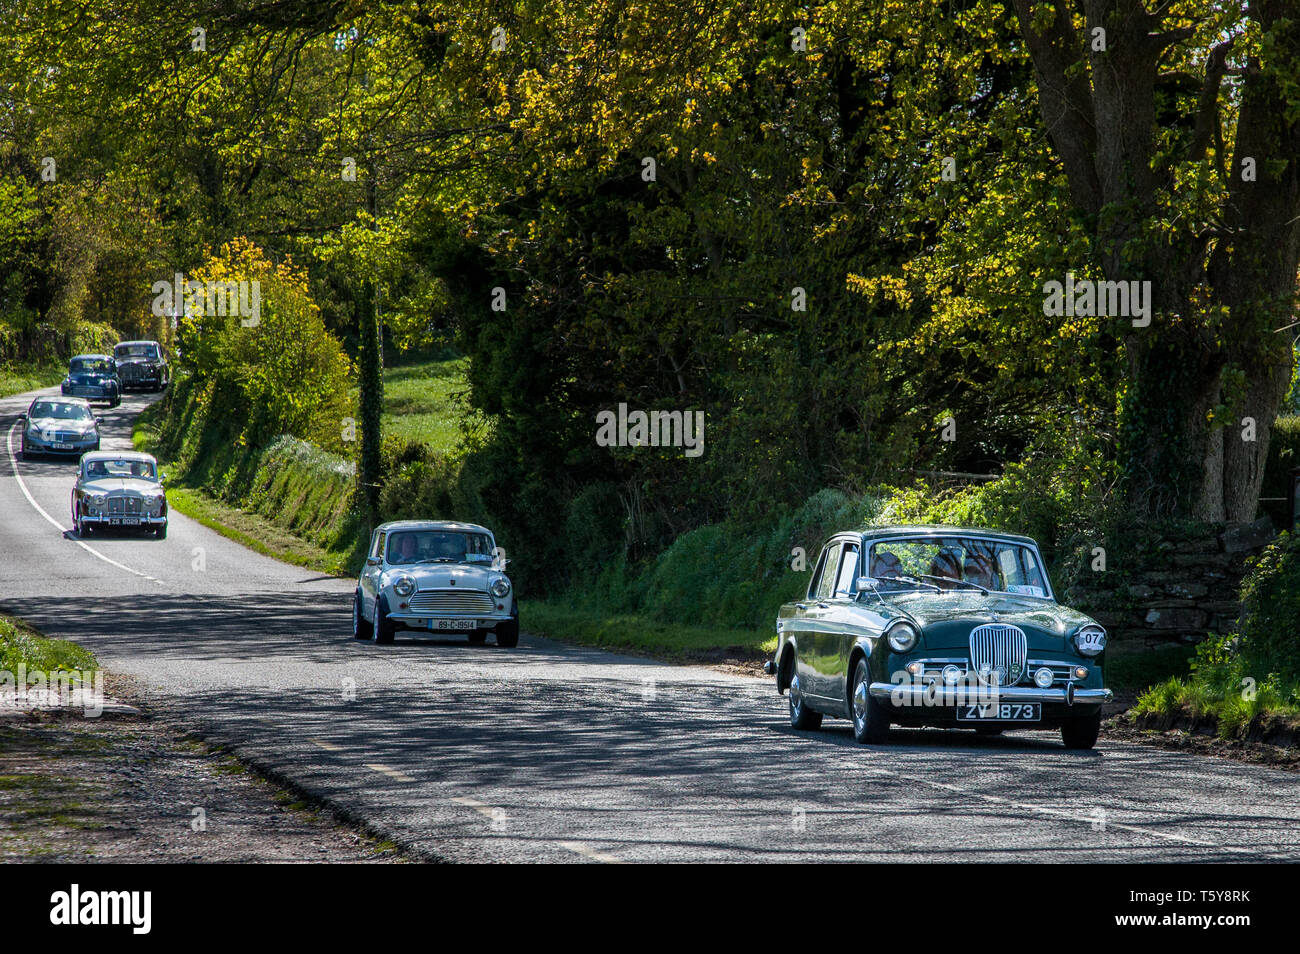 Crosshaven, Cork, Ireland. 27th April, 2019. George Vickery driving his 1950's Singer Gazelle leads the way  as part of the Crosshaven Veteran,Vintage and Classic Motor Club's  run  to Glengarriff from Crosshaven, Co. Cork, Ireland. Credit: David Creedon/Alamy Live News - Stock Image